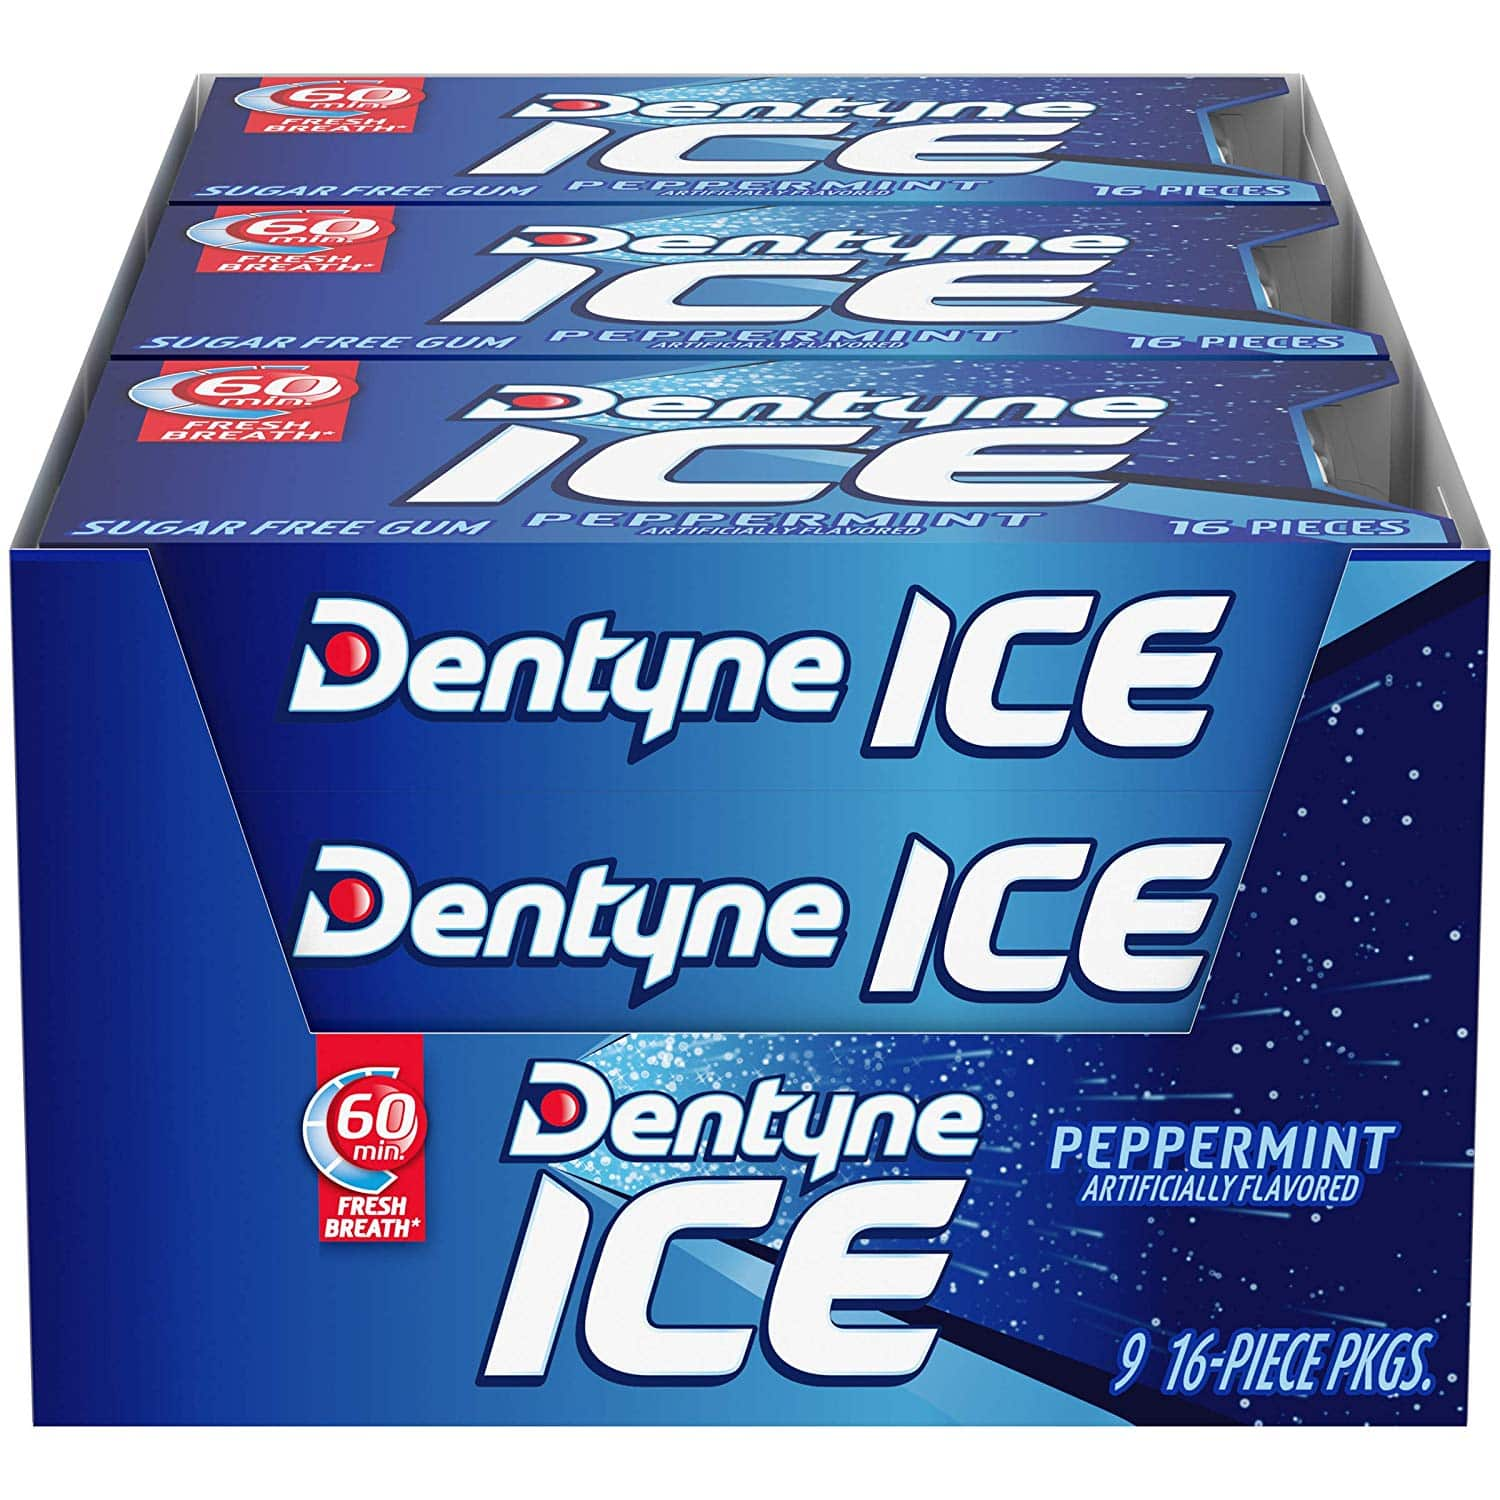 Dentyne Ice Peppermint Sugar Free Gum (9-Pack)